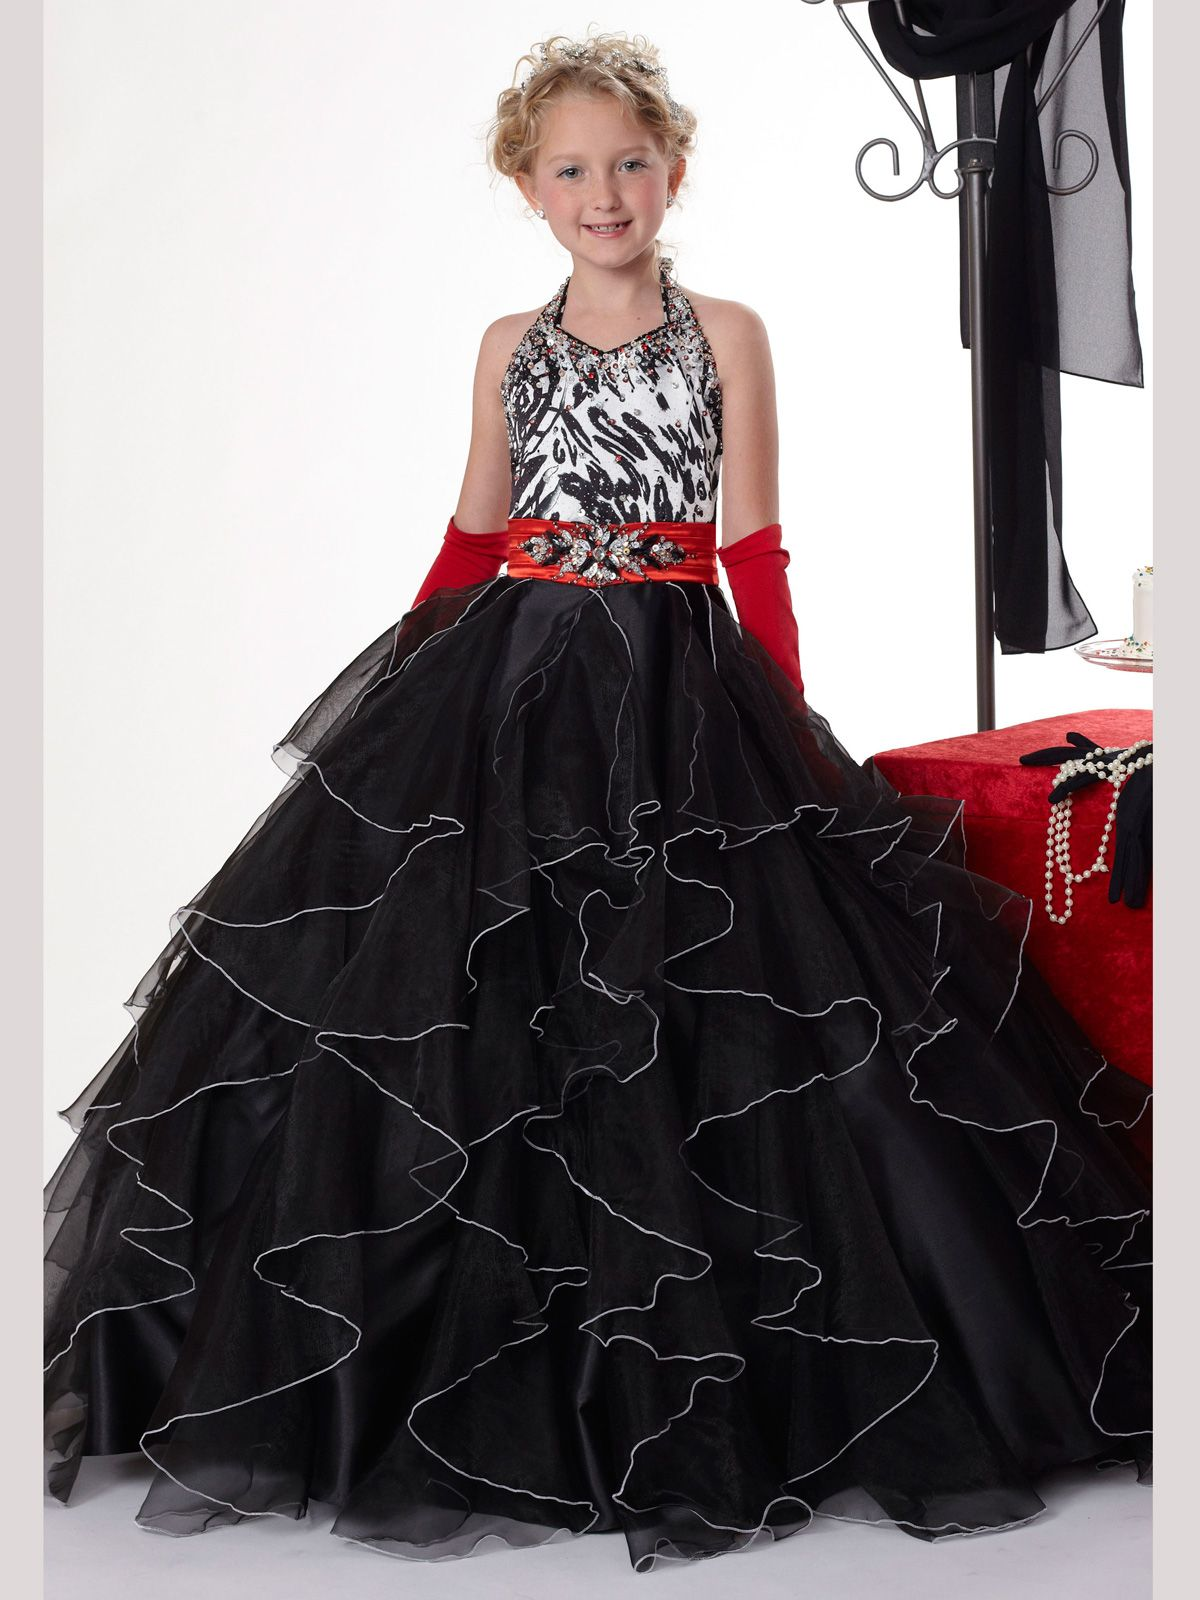 Size blackwhitered in stock offzebra pageant dress for girls